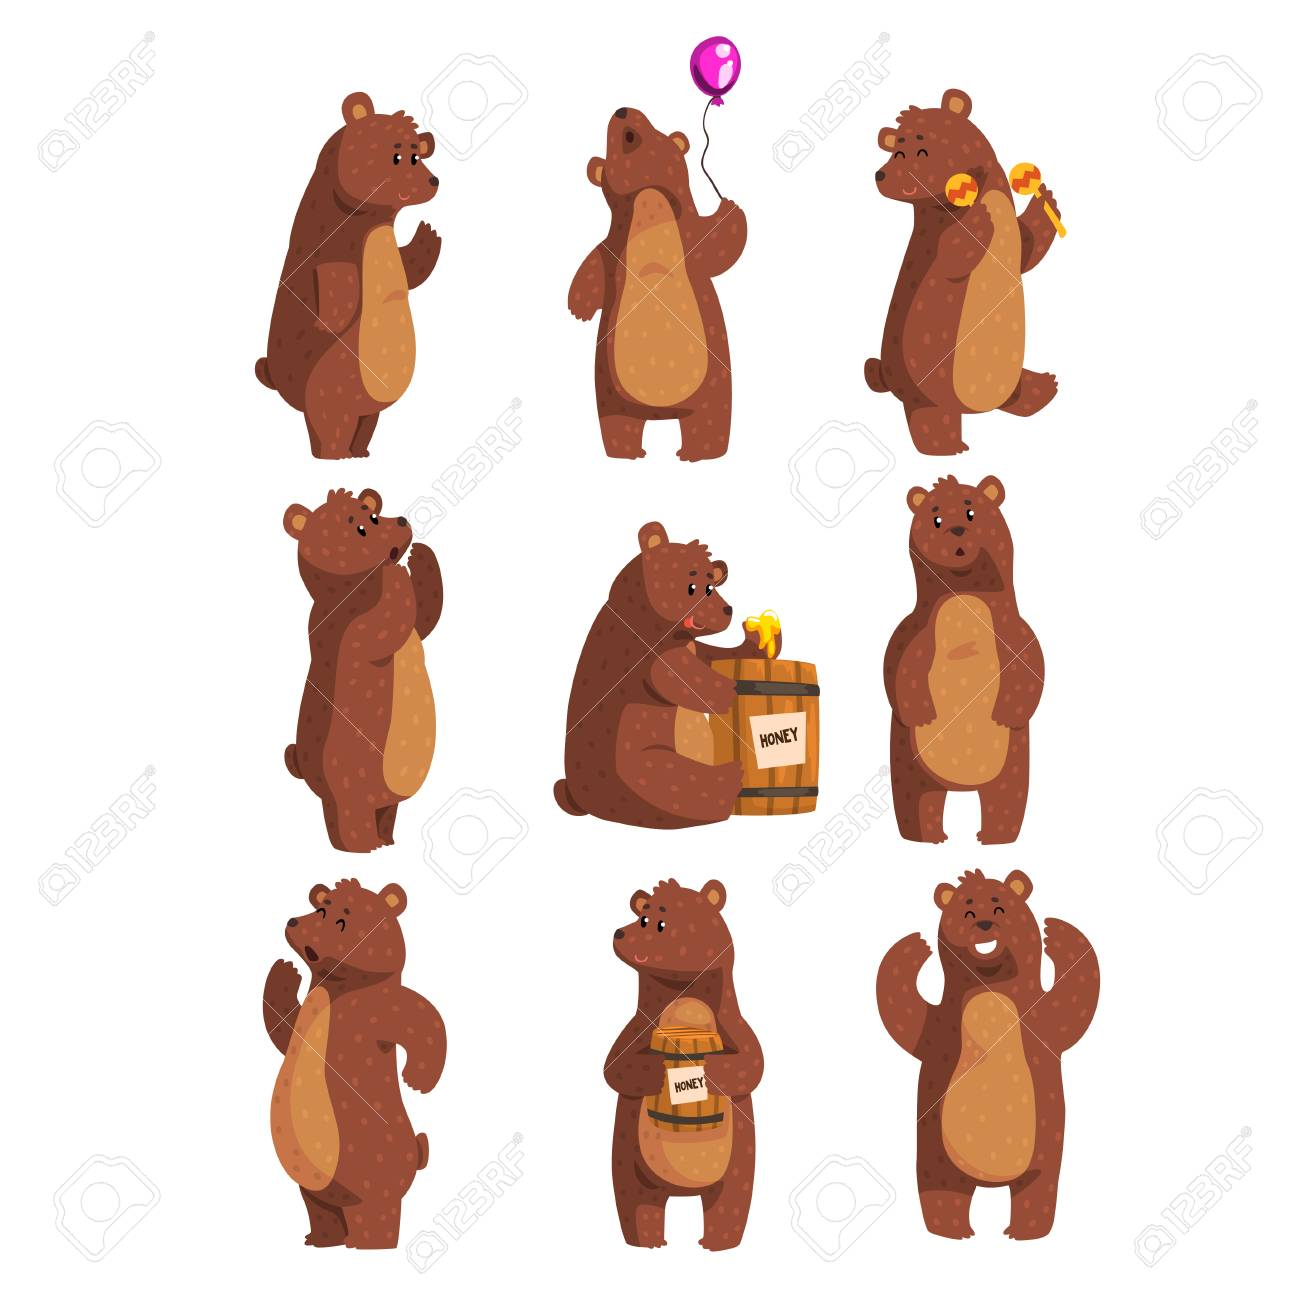 Set with funny bear. Forest animal waving by paw, holding balloon, dancing, howling, calling someone, eating honey from wooden barrel, smiling. Flat vector design - 95856544